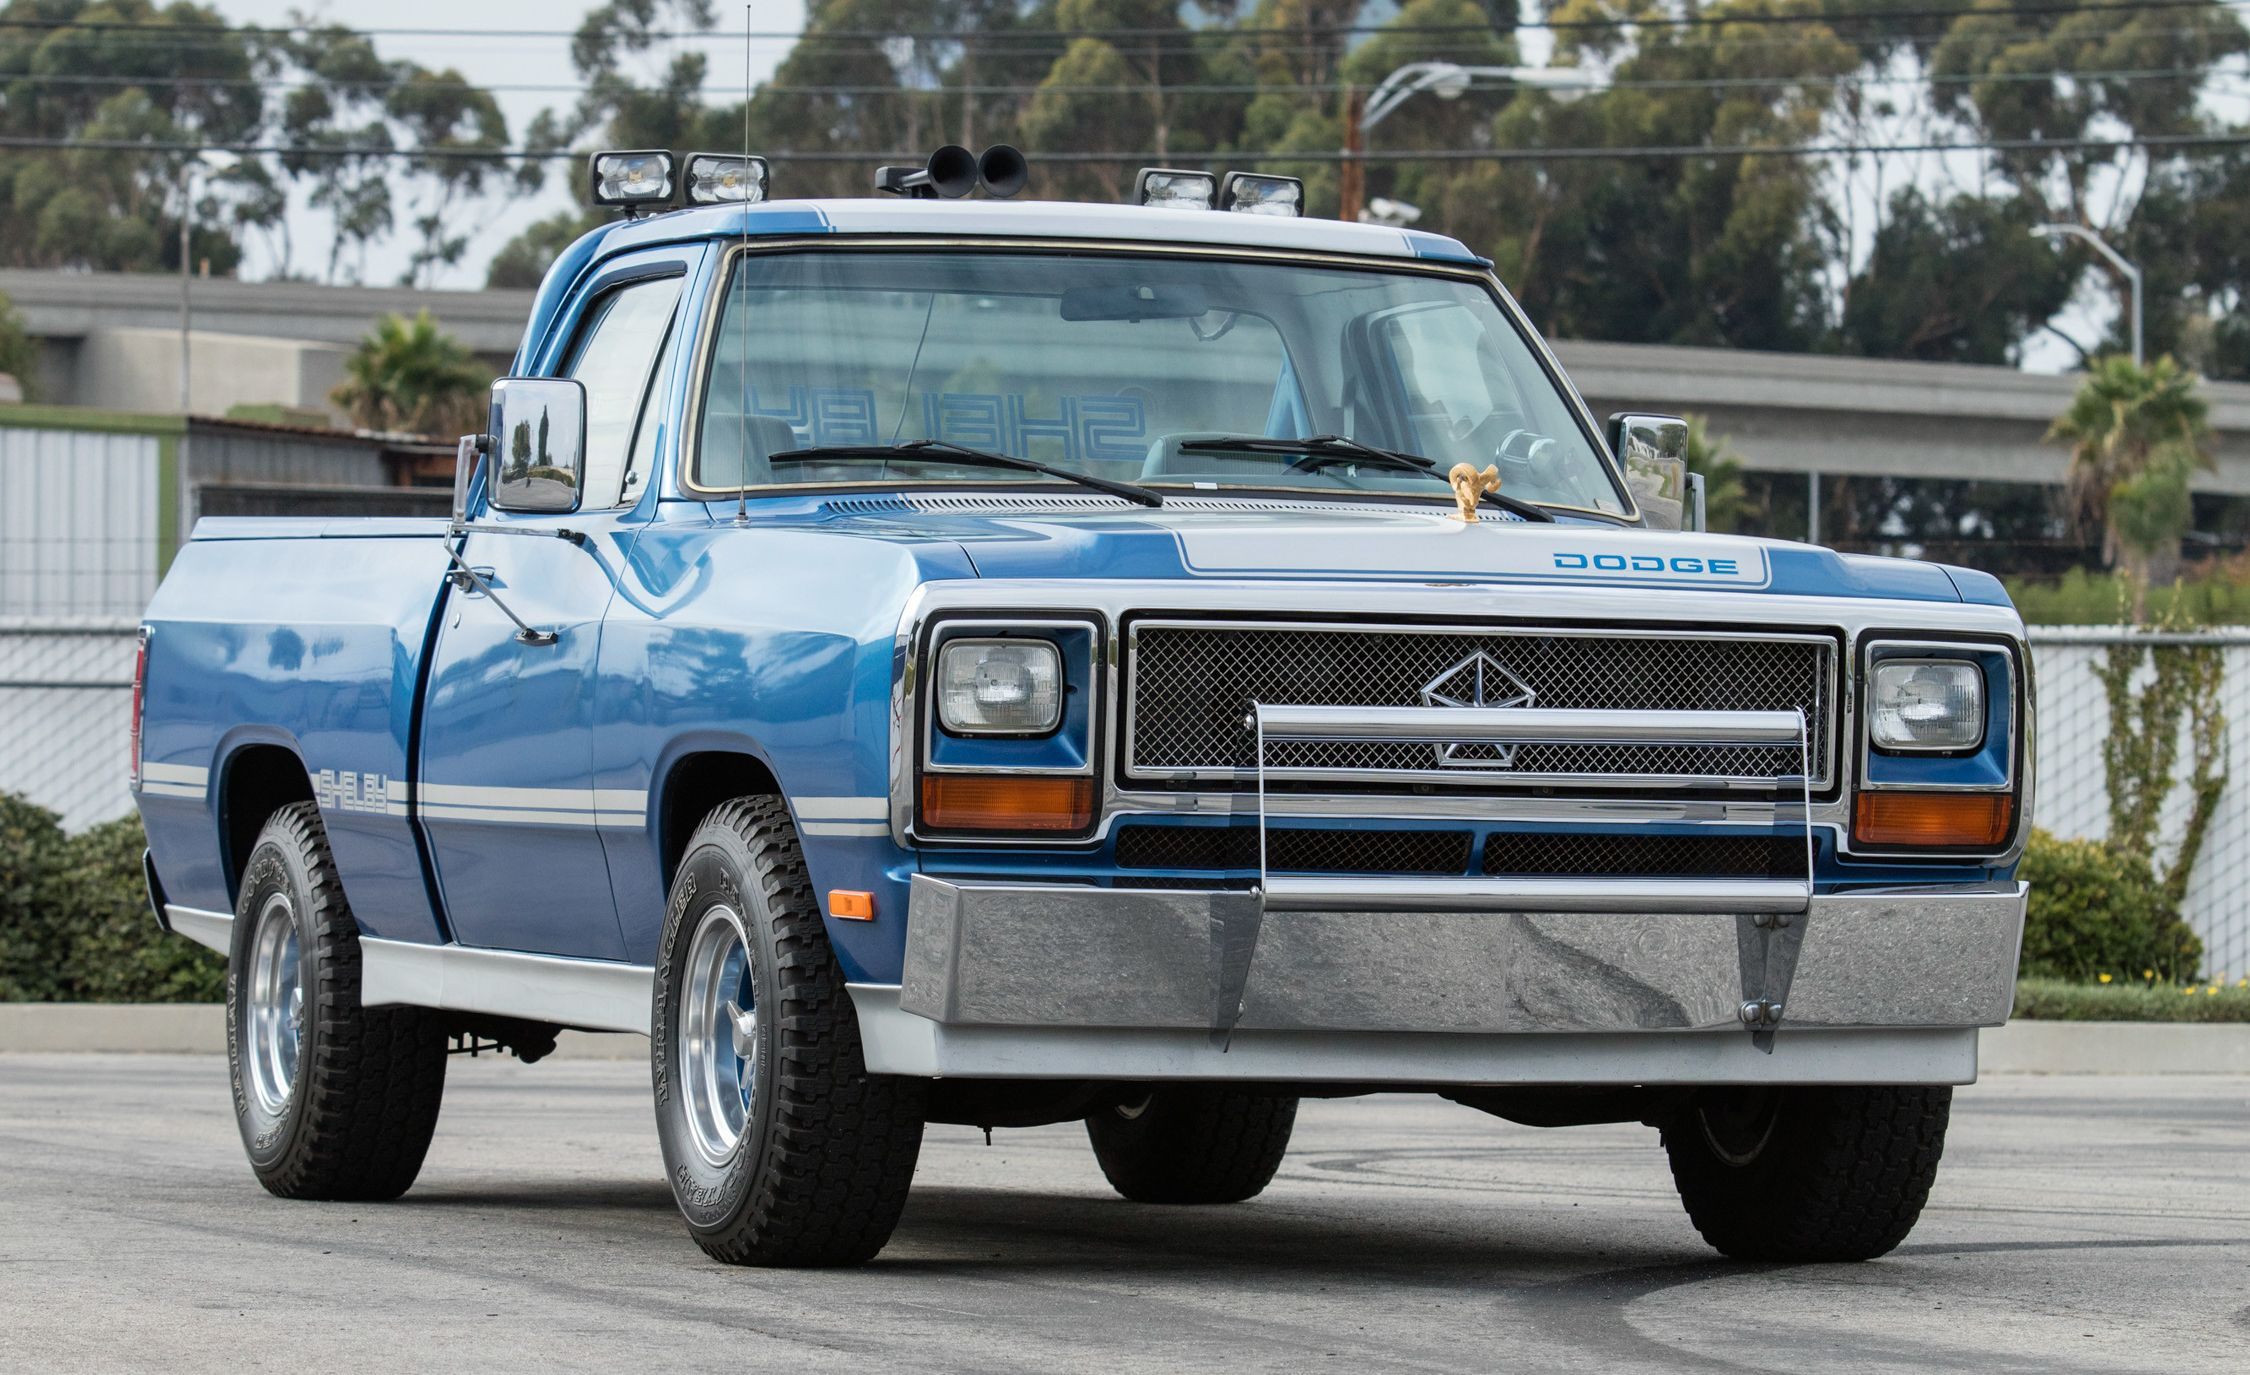 Two Rare Shelby Dodge Pickups: One You've (Maybe) Heard of and One You Haven't | News | Car and Driver